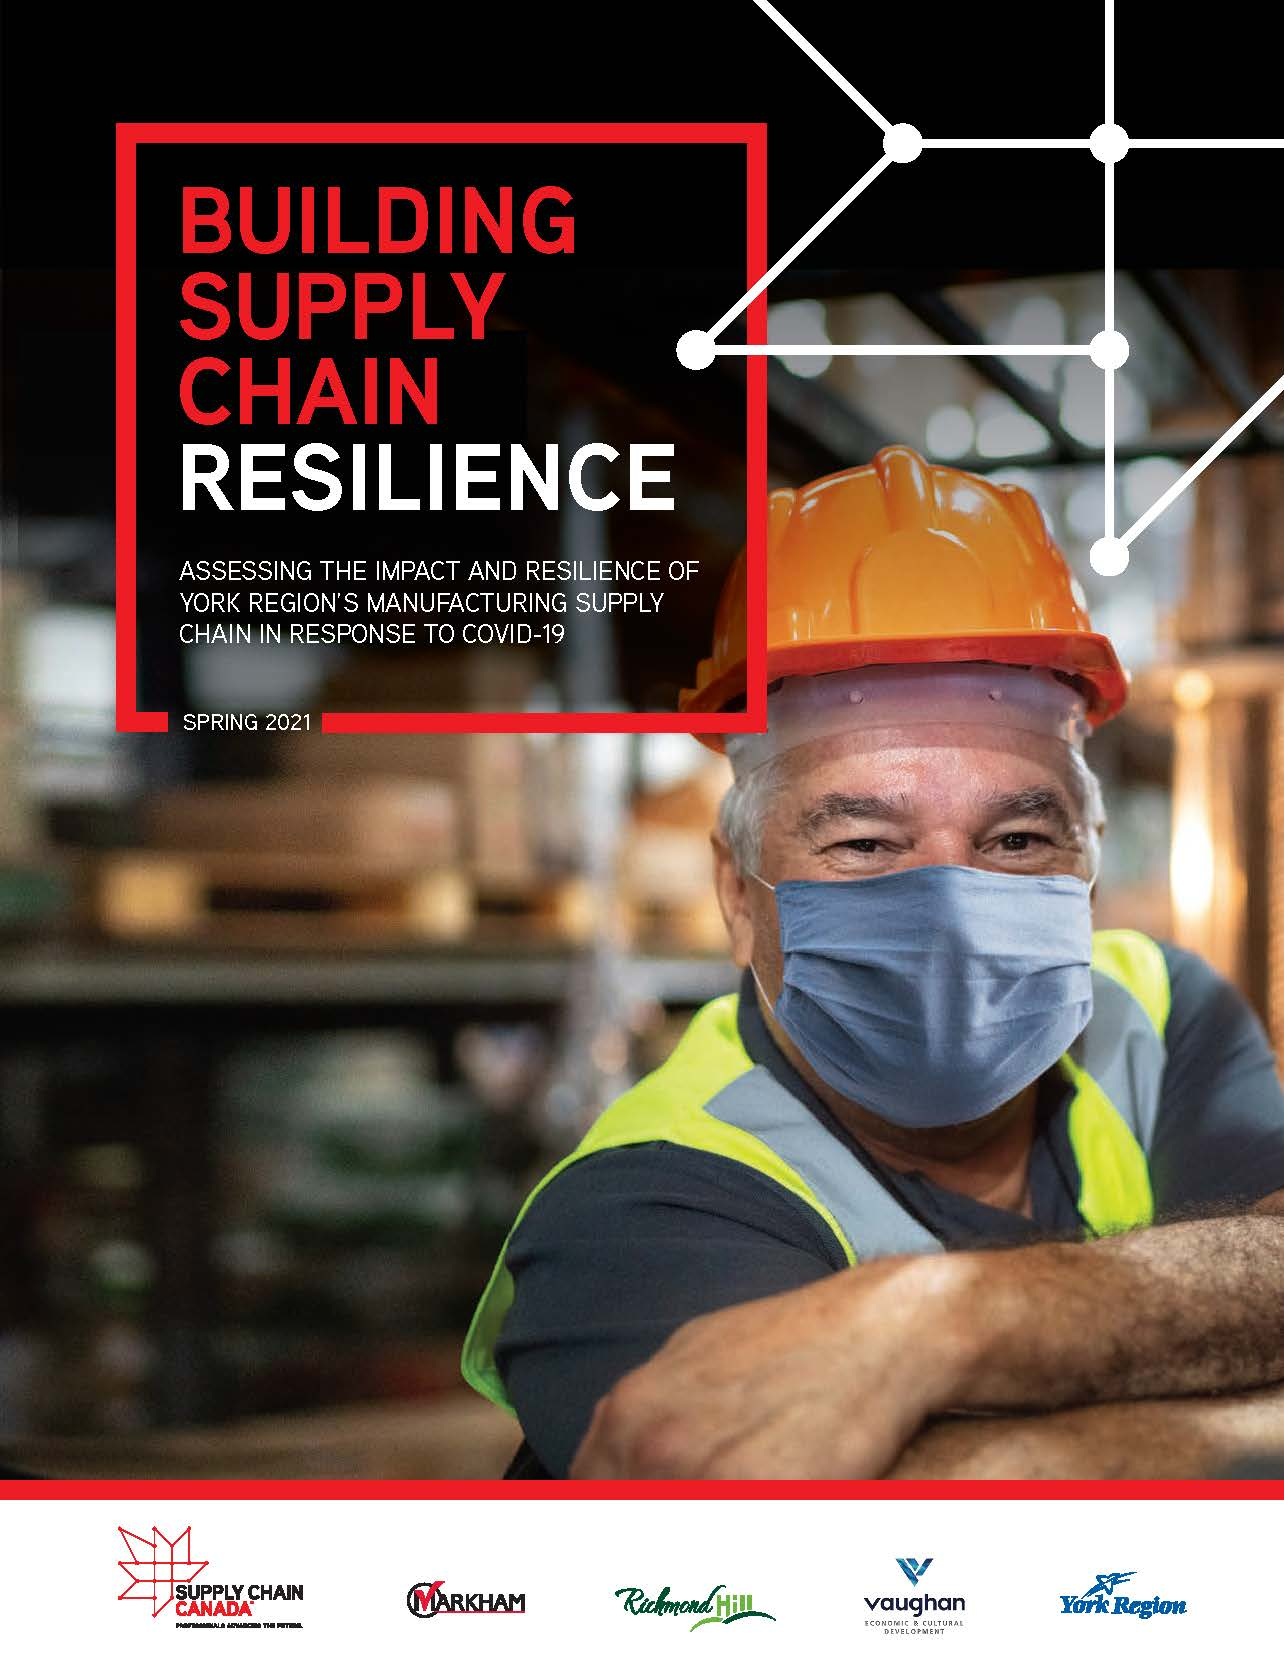 Report: Building Supply Chain Resilience: Assessing the Impact and Resilience of York Region's Manufacturing Supply Chain in Response to COVID-19